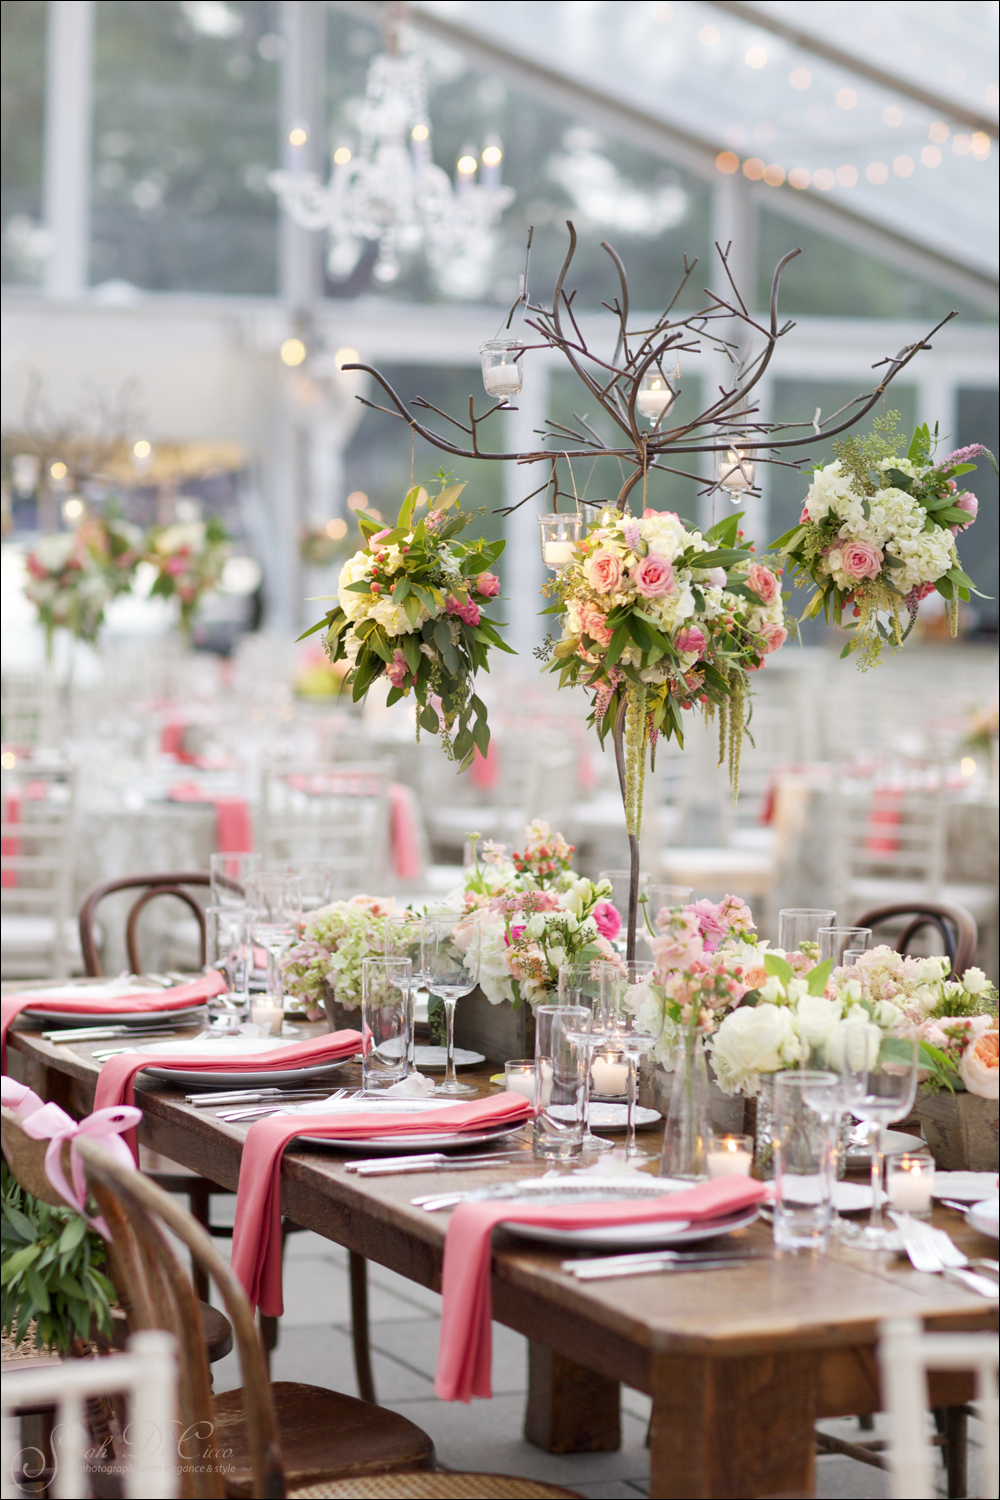 Photo by: Sarah DiCicco /  Florals: Fleur De Lis / Tent: EventQuip /  Venue: Waterworks/ Lighting: Eventions  / Rentals: Maggpie Vintage Rentals & Party Rental LTD. / Styling & Planning: The Styled Bride